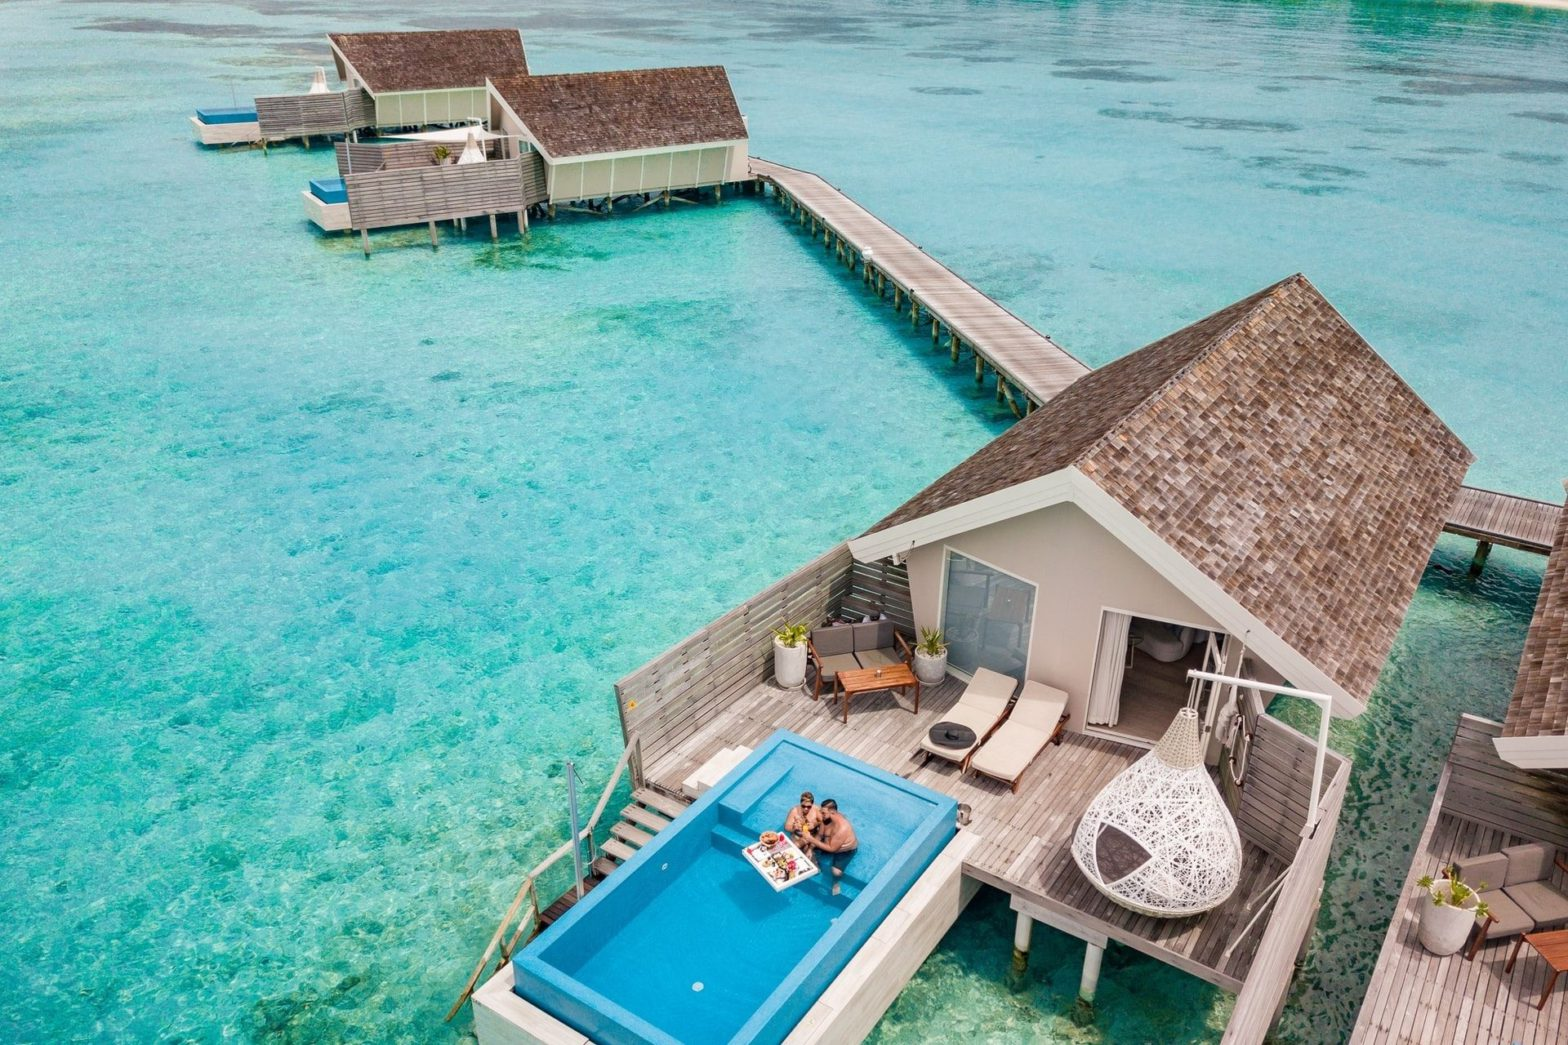 Maldives Honeymoon Packages from Kochi (All Inclusive Cost & Itinerary)